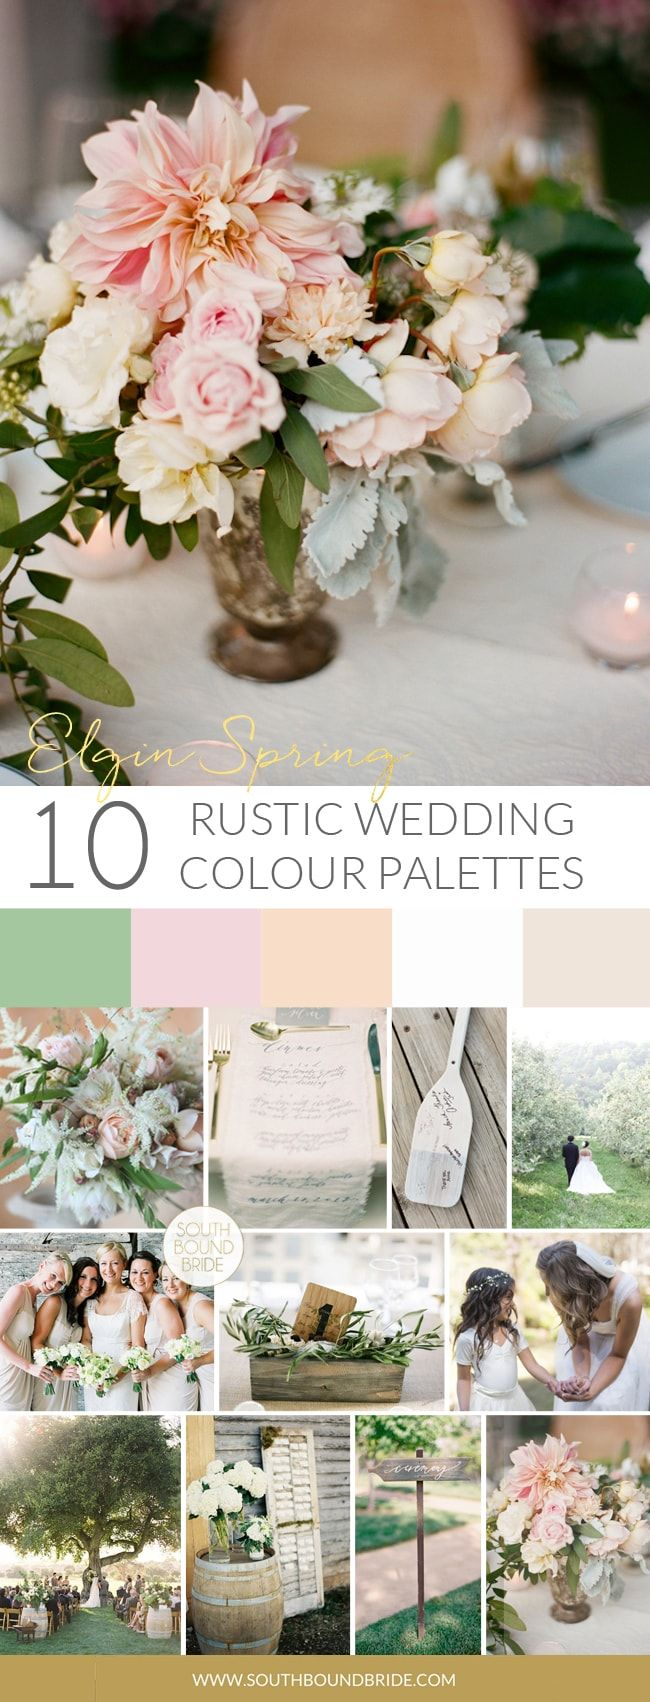 10 Rustic Wedding Color Palettes Wedding Themes Rustic Rustic Wedding Colors Spring Wedding Colors